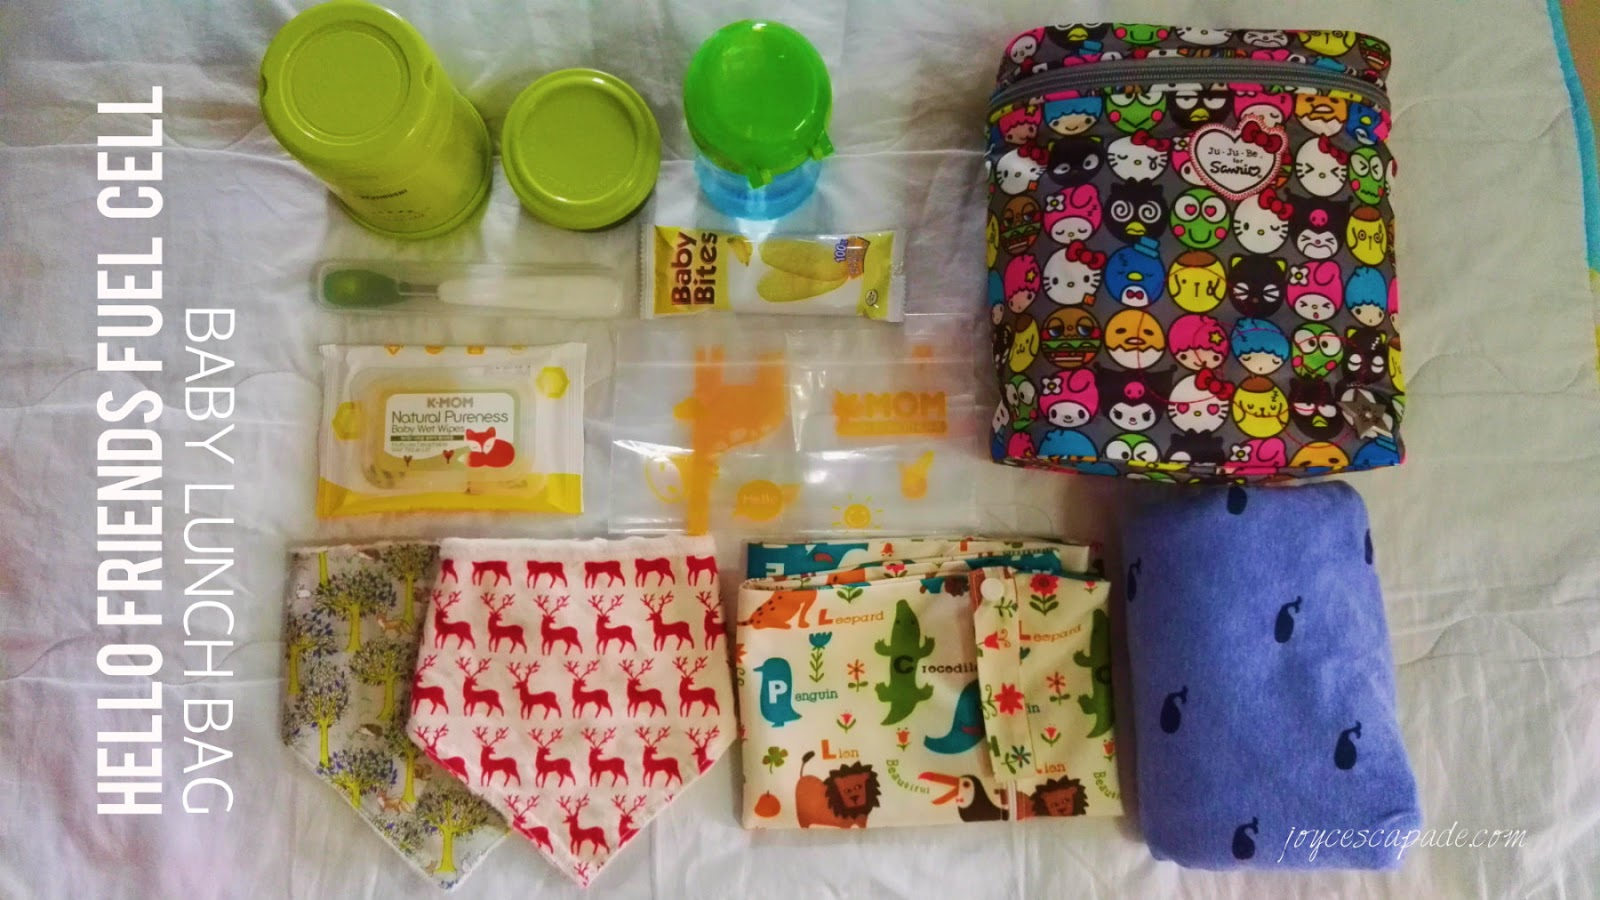 Packing Jujube Hello Friends Fuel Cell As Babys Lunch Bag Joy N Coin Purse My First Blog Post About How I Pack Bags Head Over To This For Just Wanna Focus On